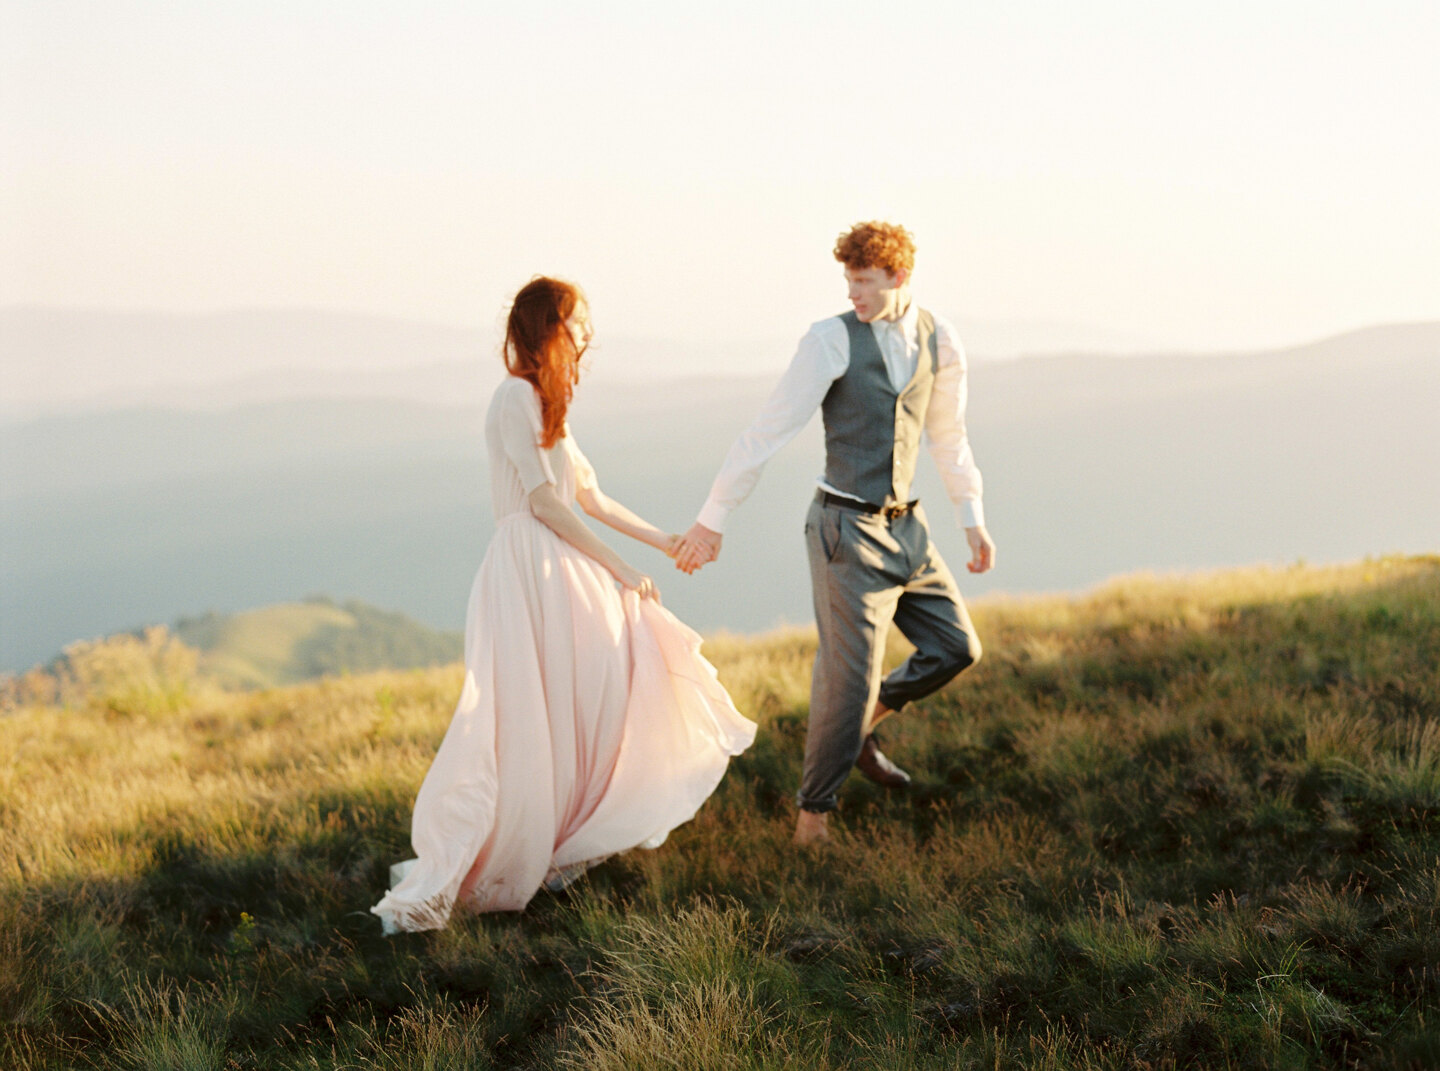 Couple photoshoot in Italy: An extraordinary couple of newlyweds with red hair, they walk along a sunny valley holding hands